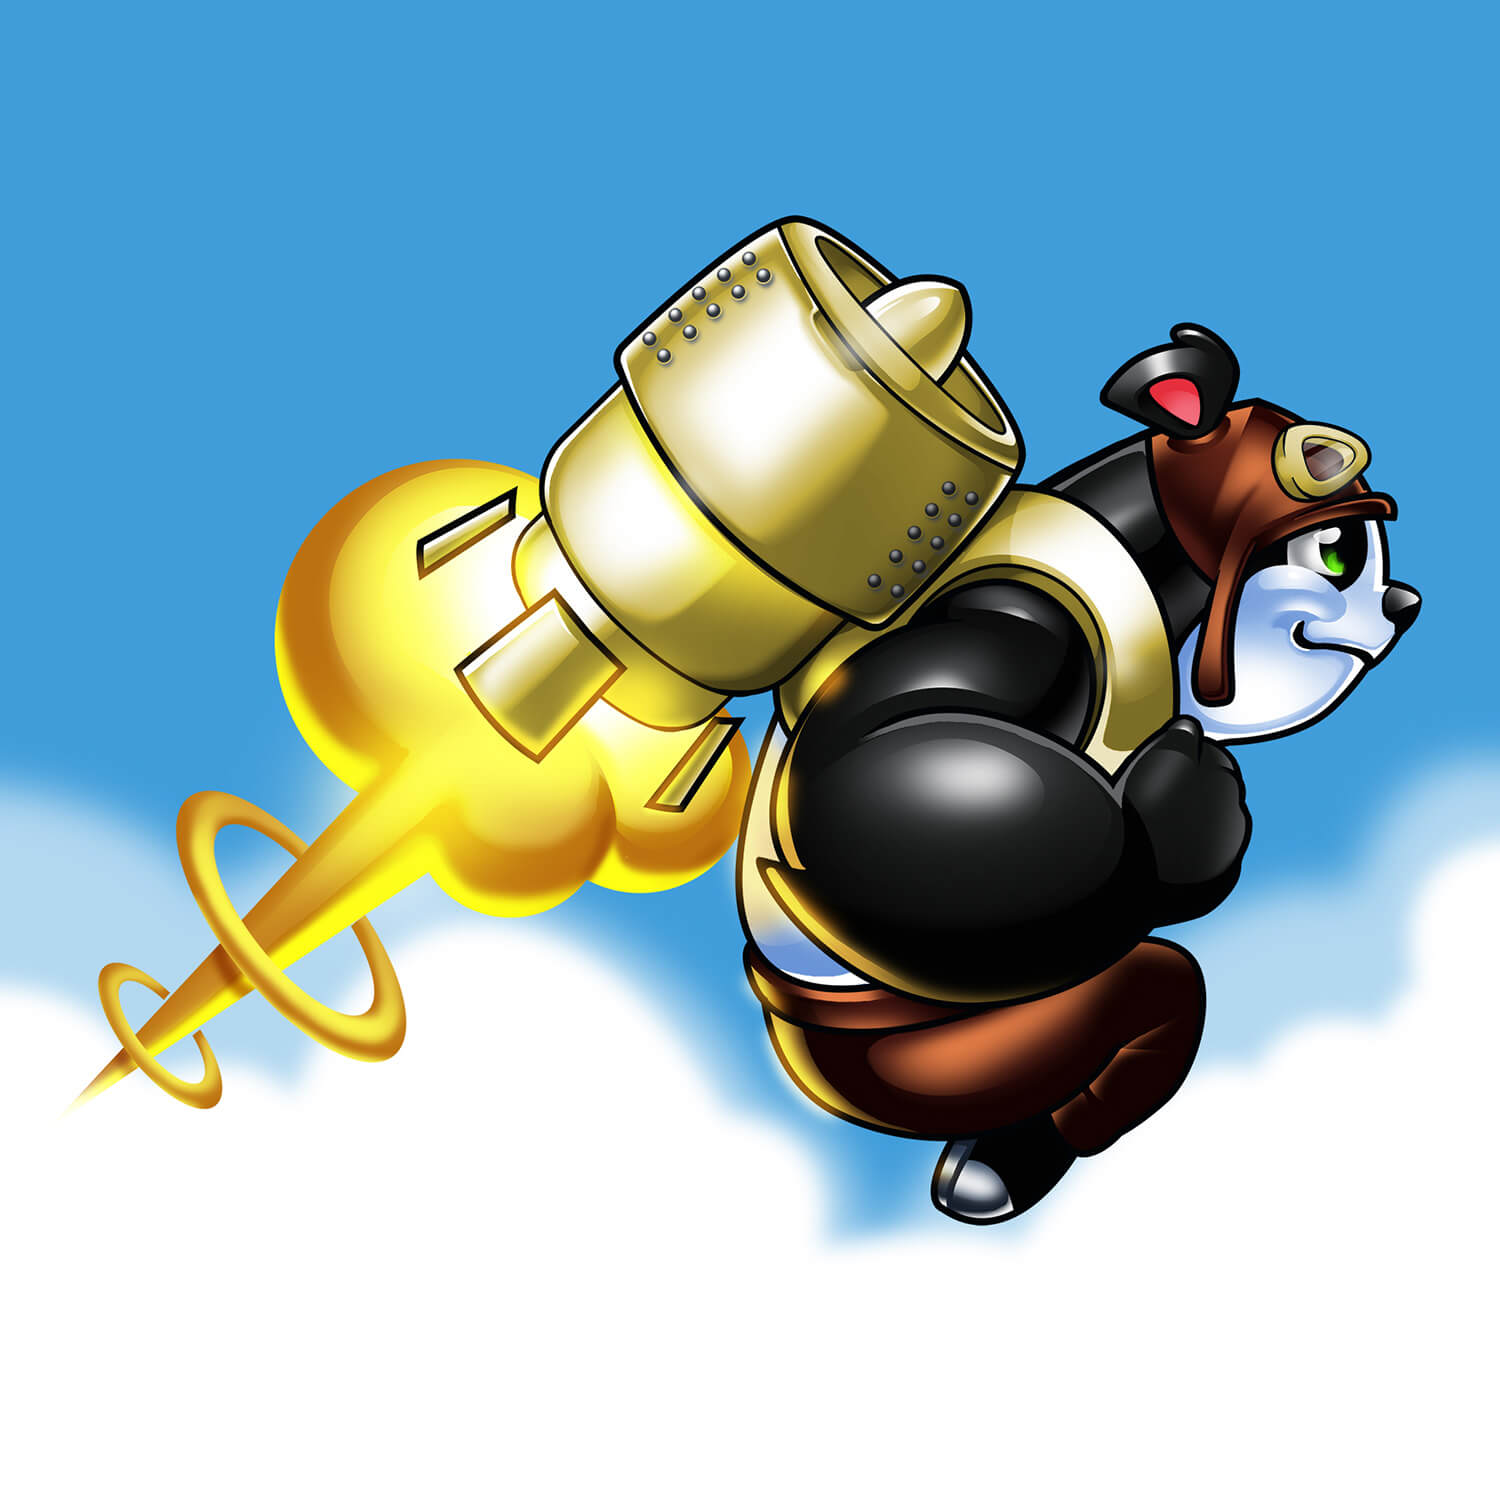 Rocket Panda Game Art